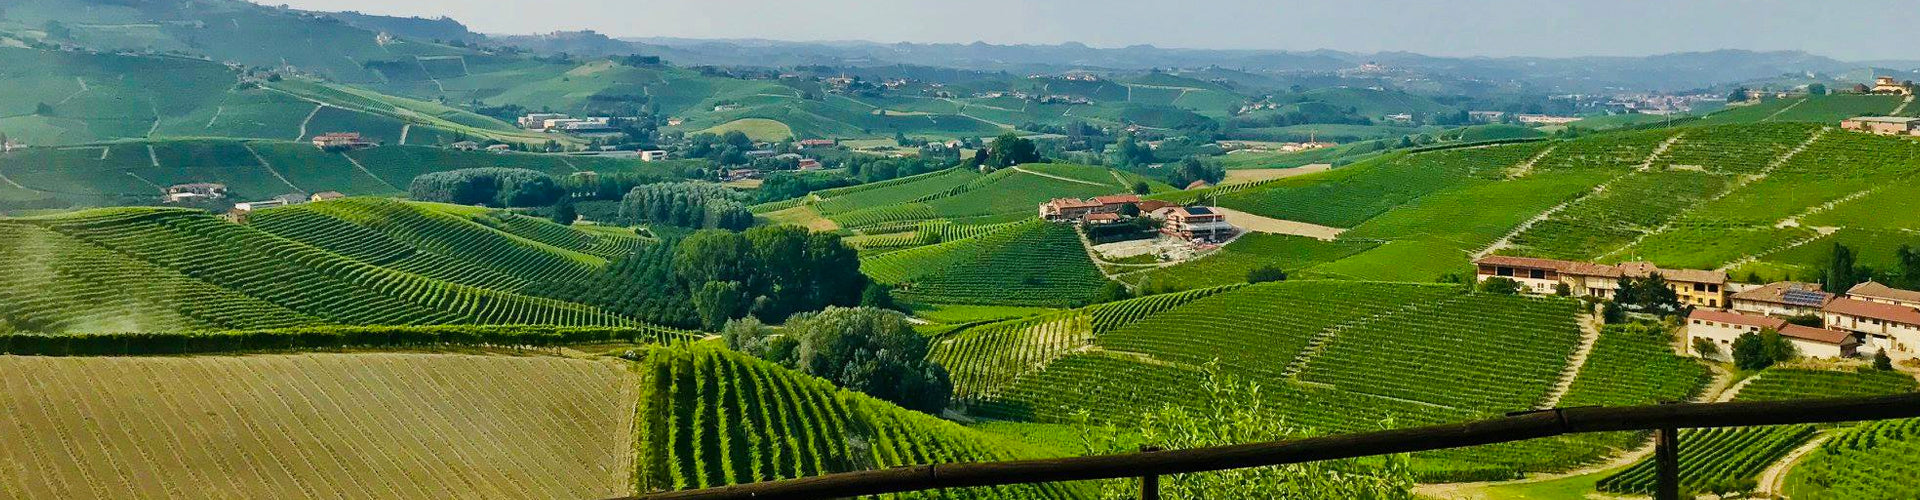 View over Giacomo Fenocchio Vineyards in Monforte d'Alba